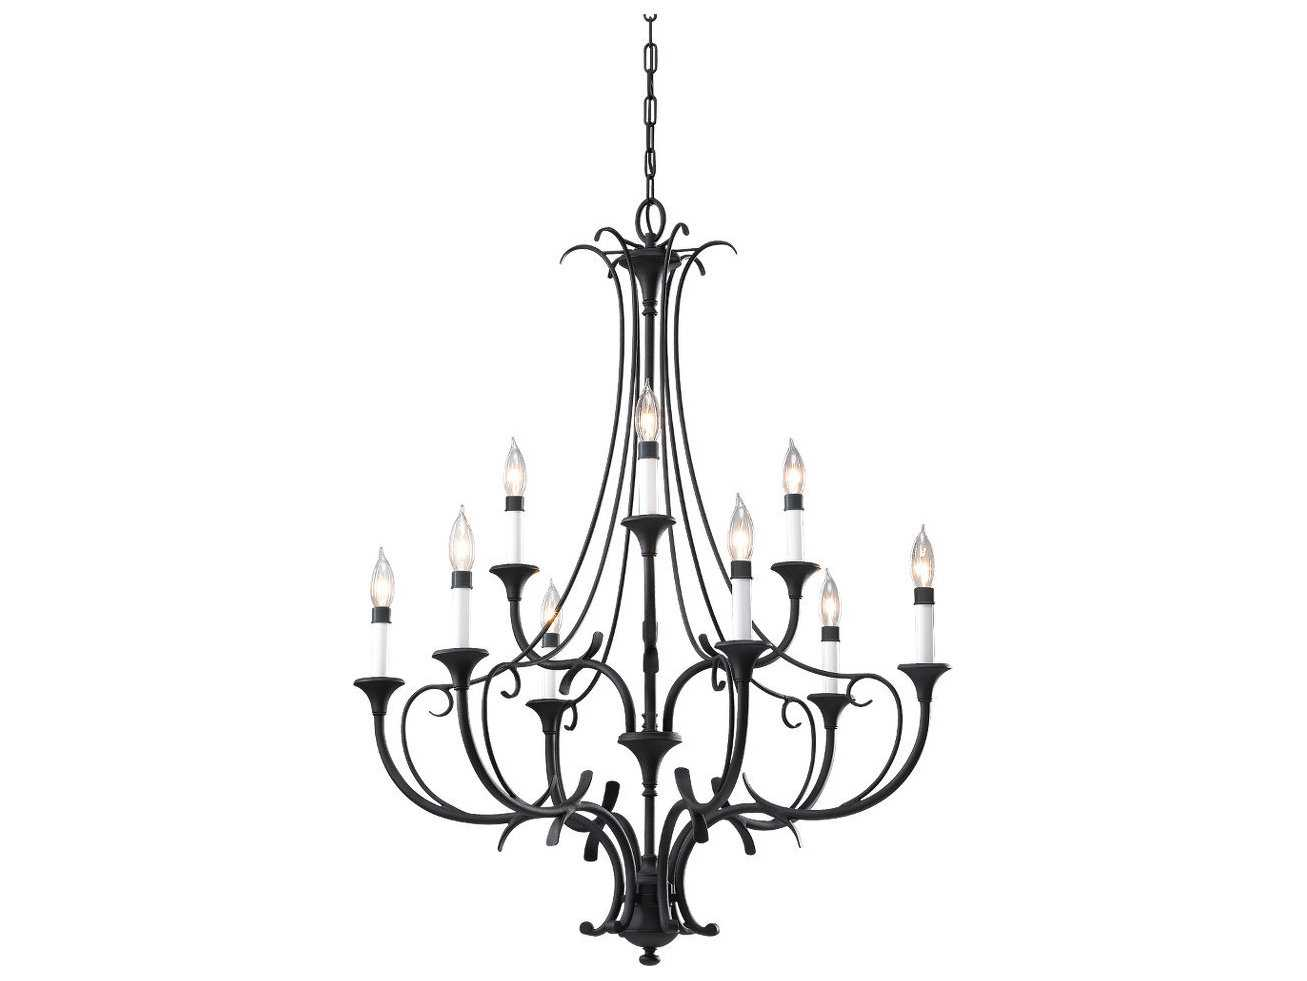 Feiss peyton black 31 wide nine light chandelier f2534 6 3bk feiss peyton black 31 wide nine light chandelier arubaitofo Image collections